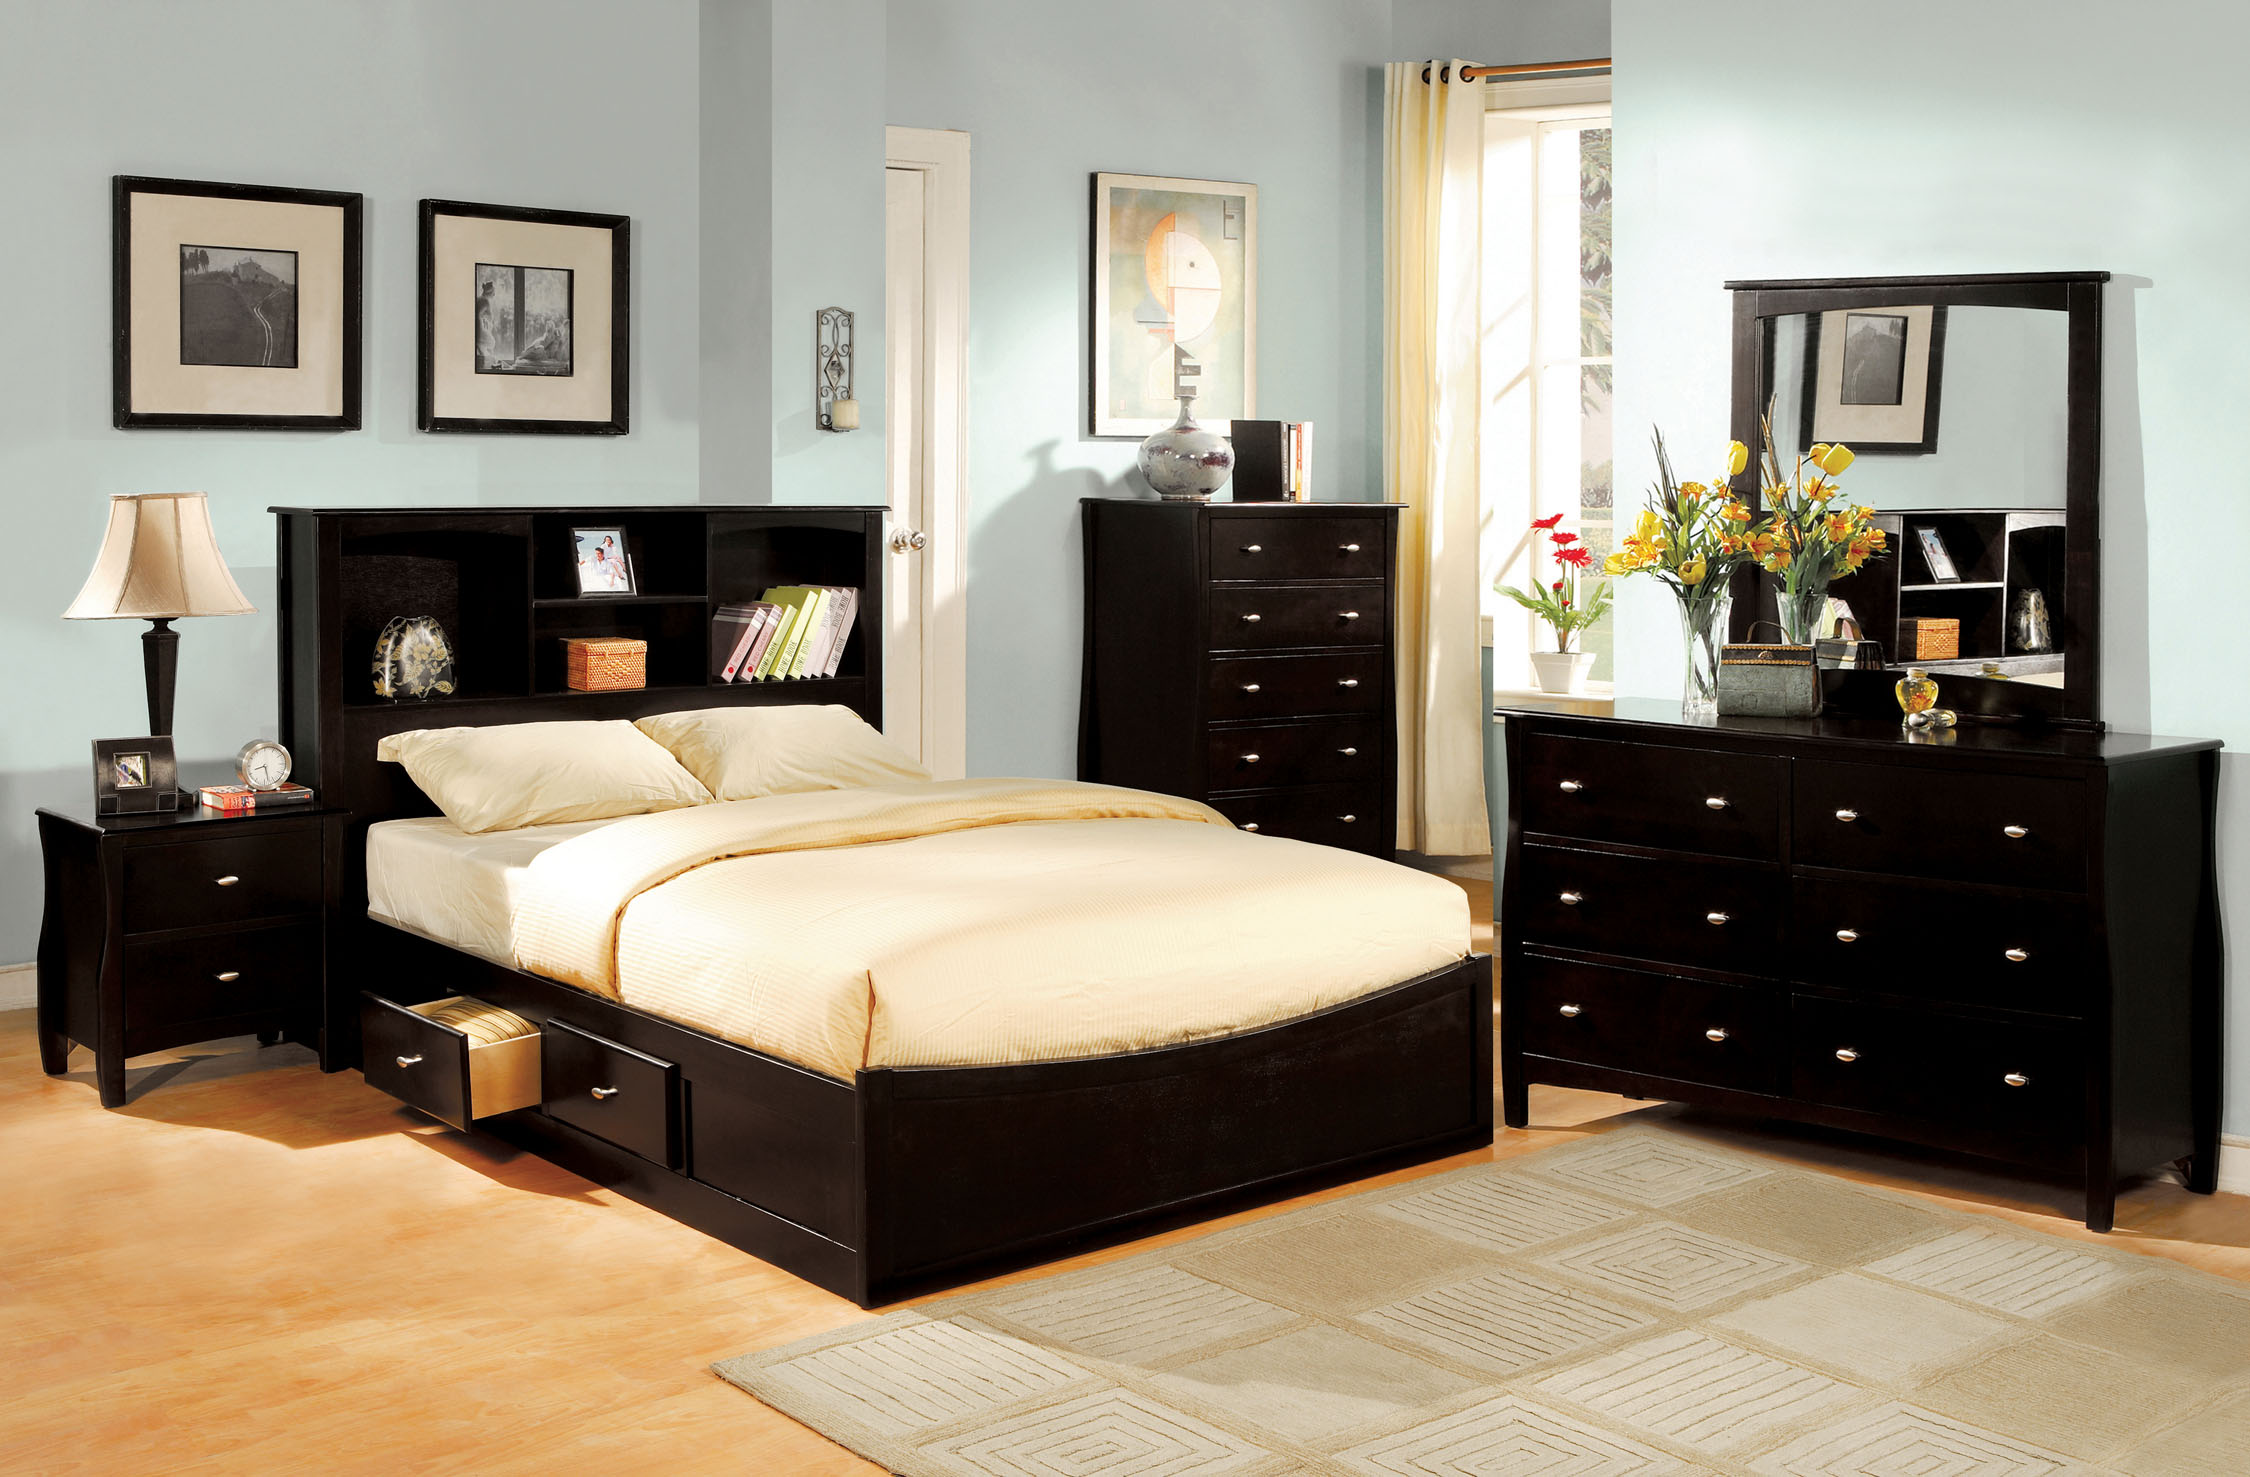 Furniture of America Earle Espresso Bed with Bookcase Headboard